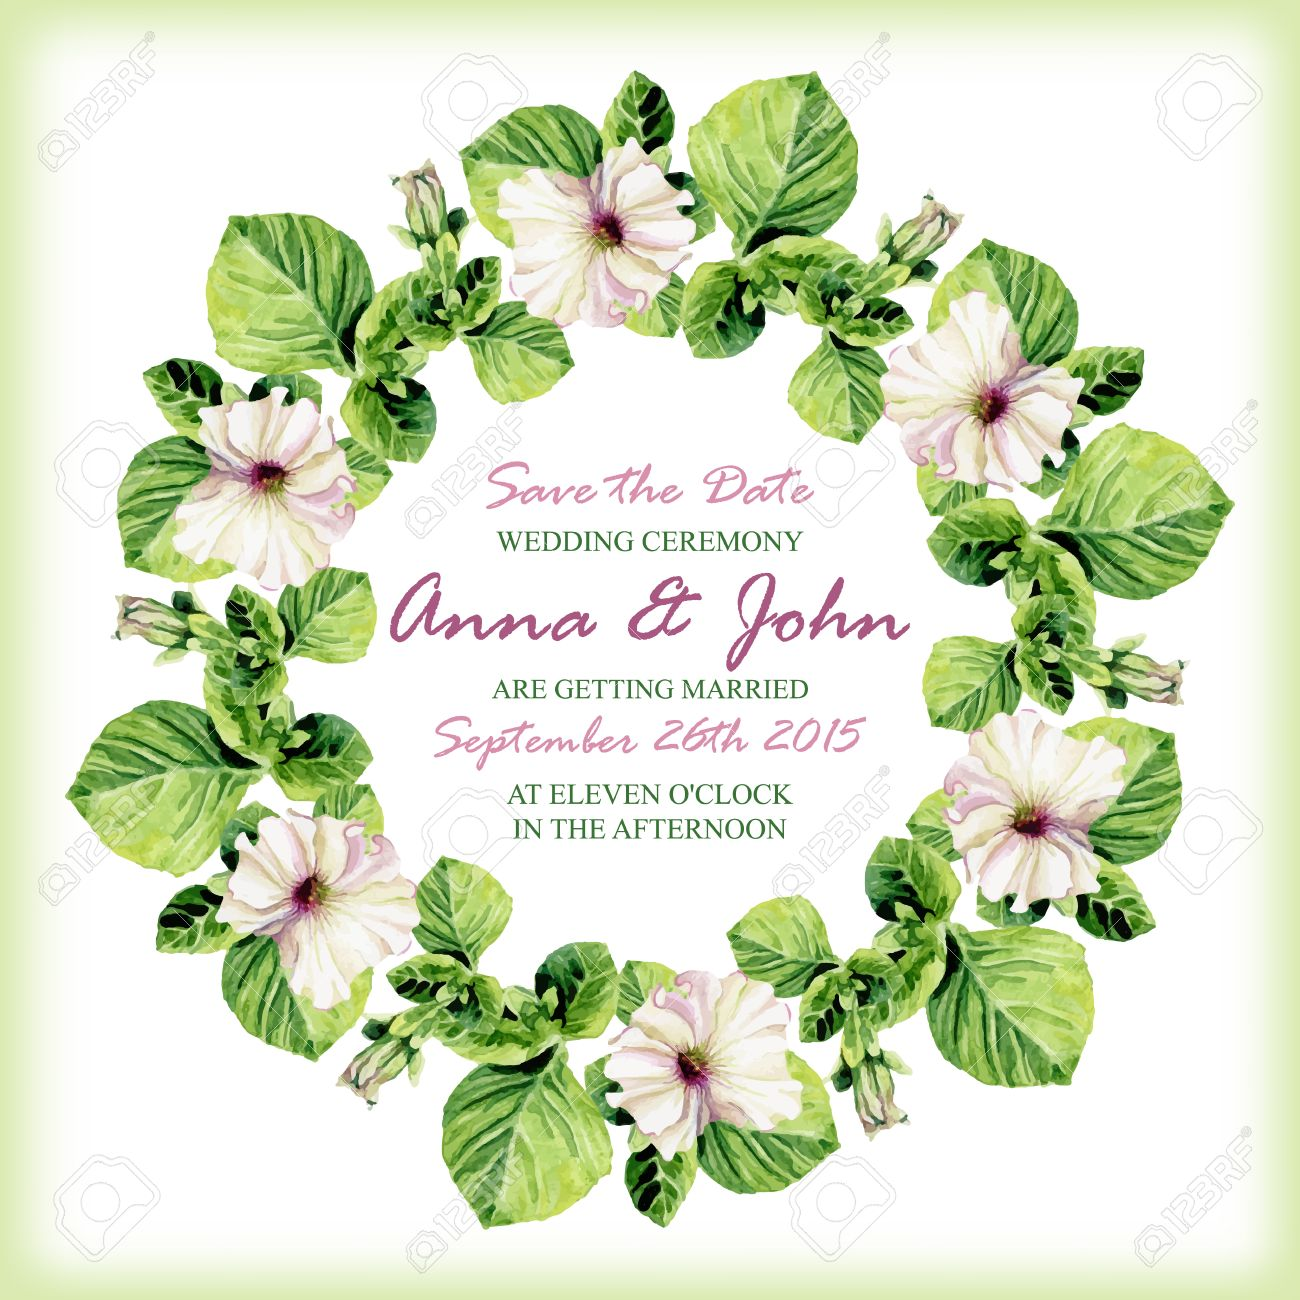 Wedding invitation design template with watercolor floral circular vector wedding invitation design template with watercolor floral circular frame vector background for special occasions life events save the date stopboris Choice Image